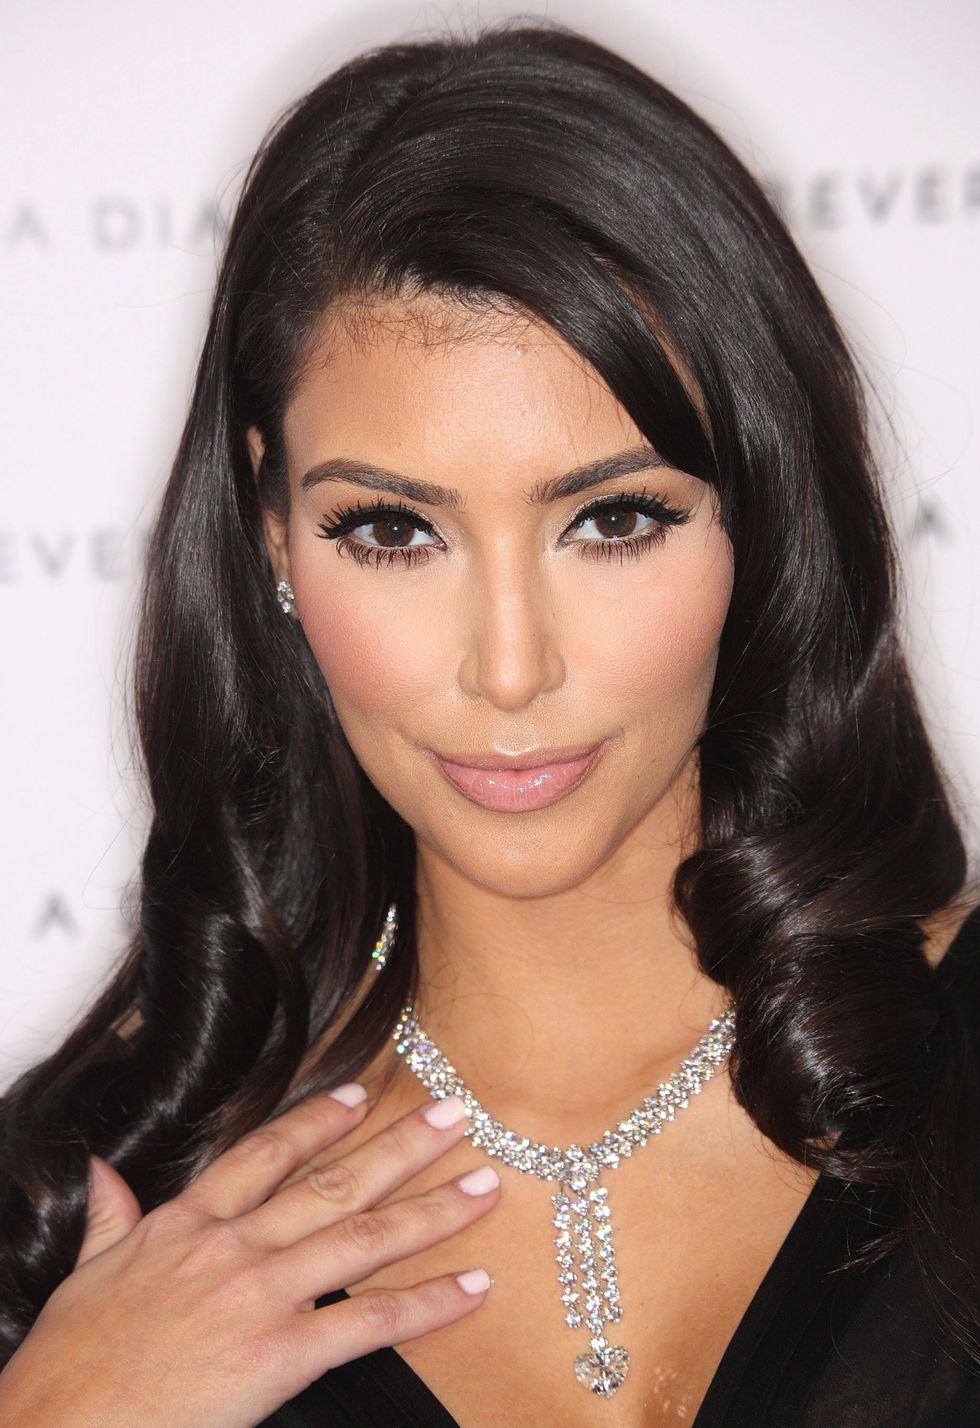 kim-kardashian-private-pre-oscar-dinner-celebrating-diamonds-in-africa-01